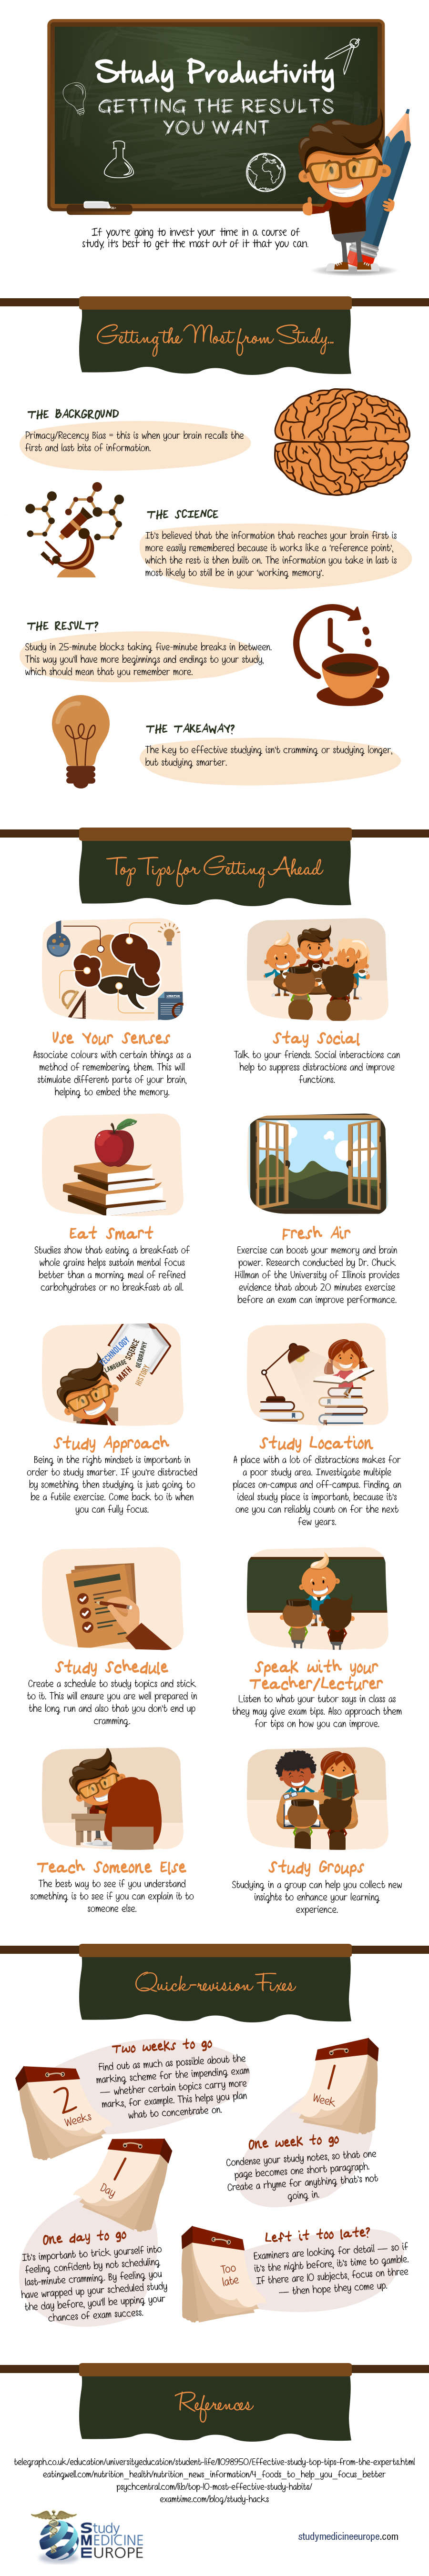 Study-Smart-An-Infographic-2